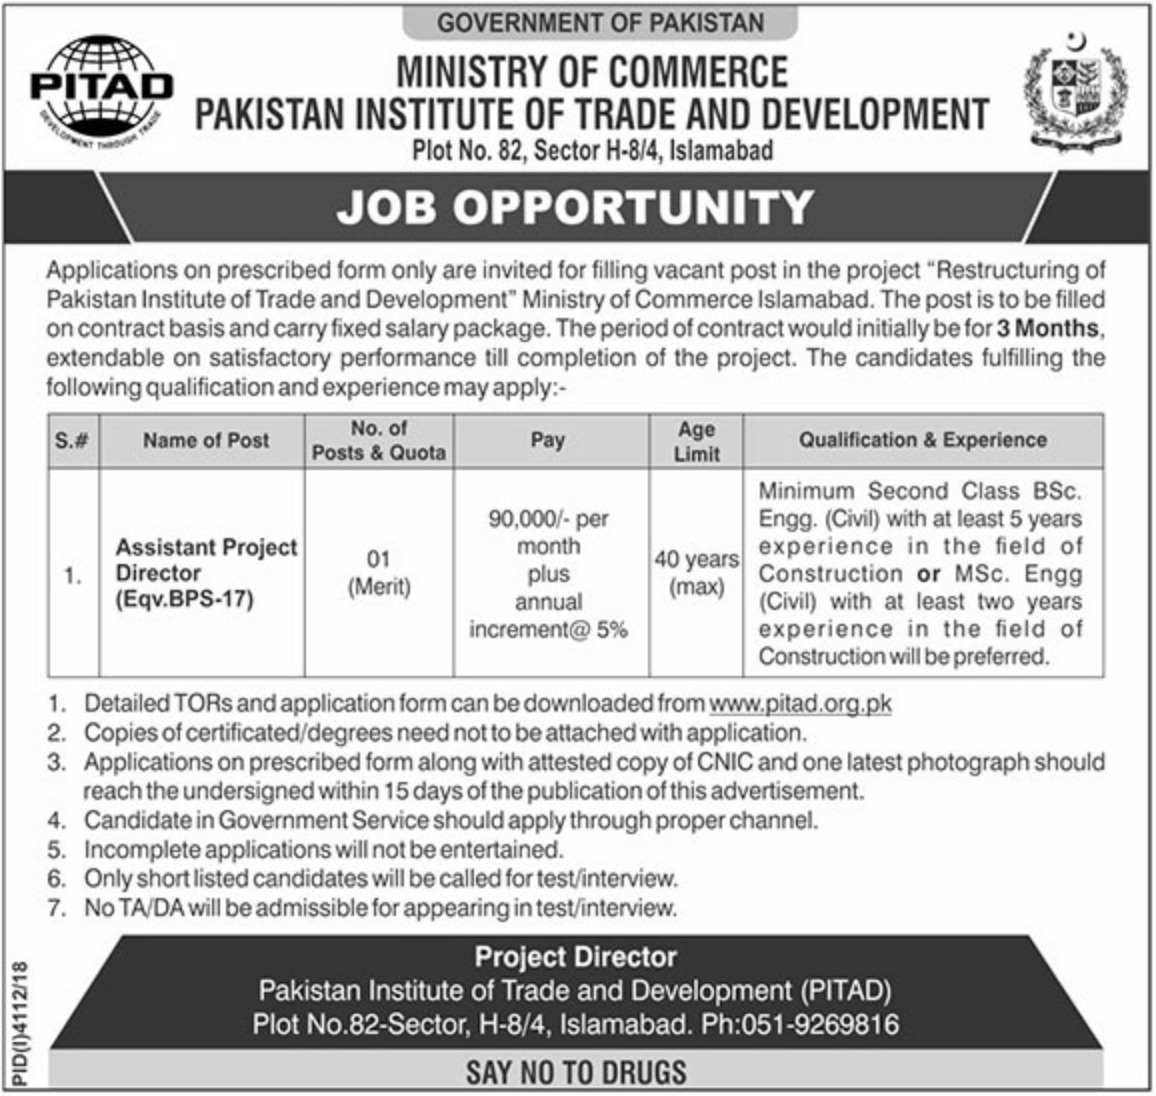 Ministry of Commerce Jobs 2019 Pakistan Institute of Trade and Development PITAD